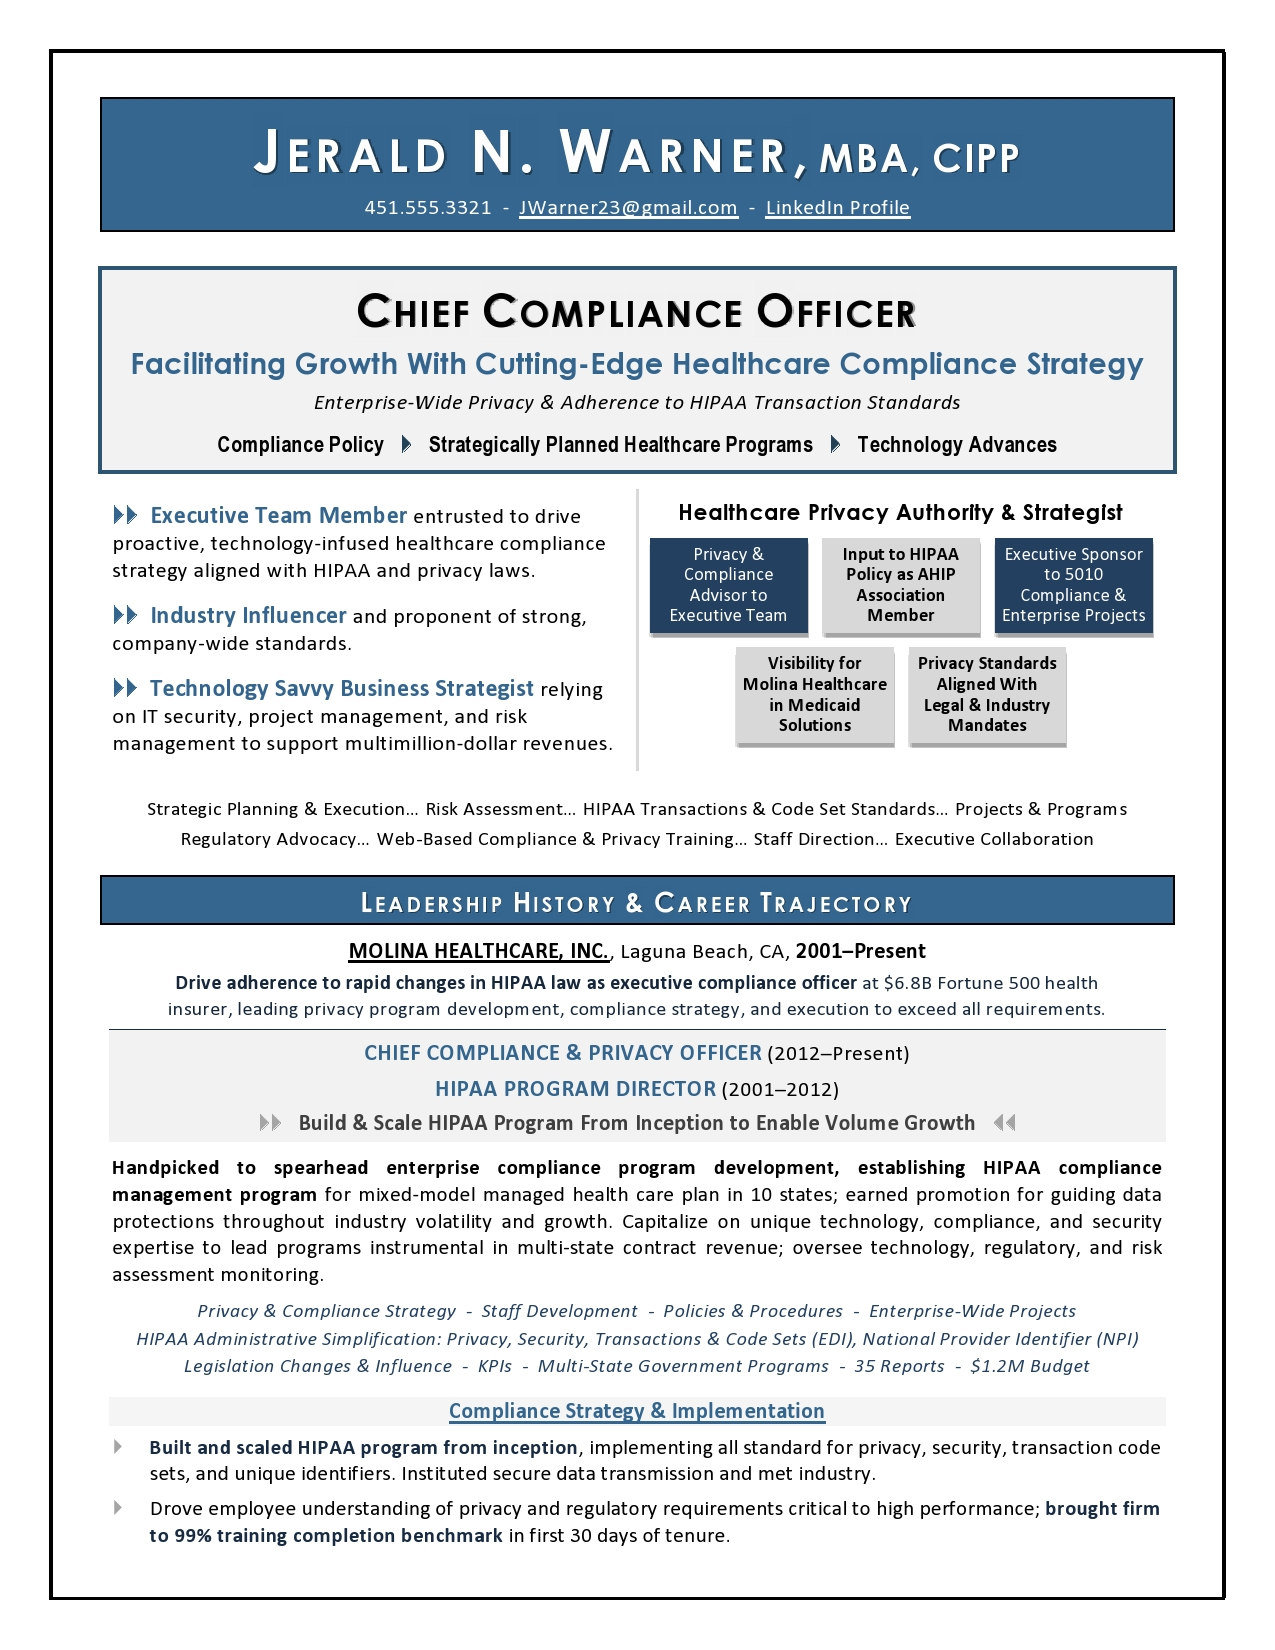 Sample Cover Letter for VP Corporate Strategy - Executive resume ...